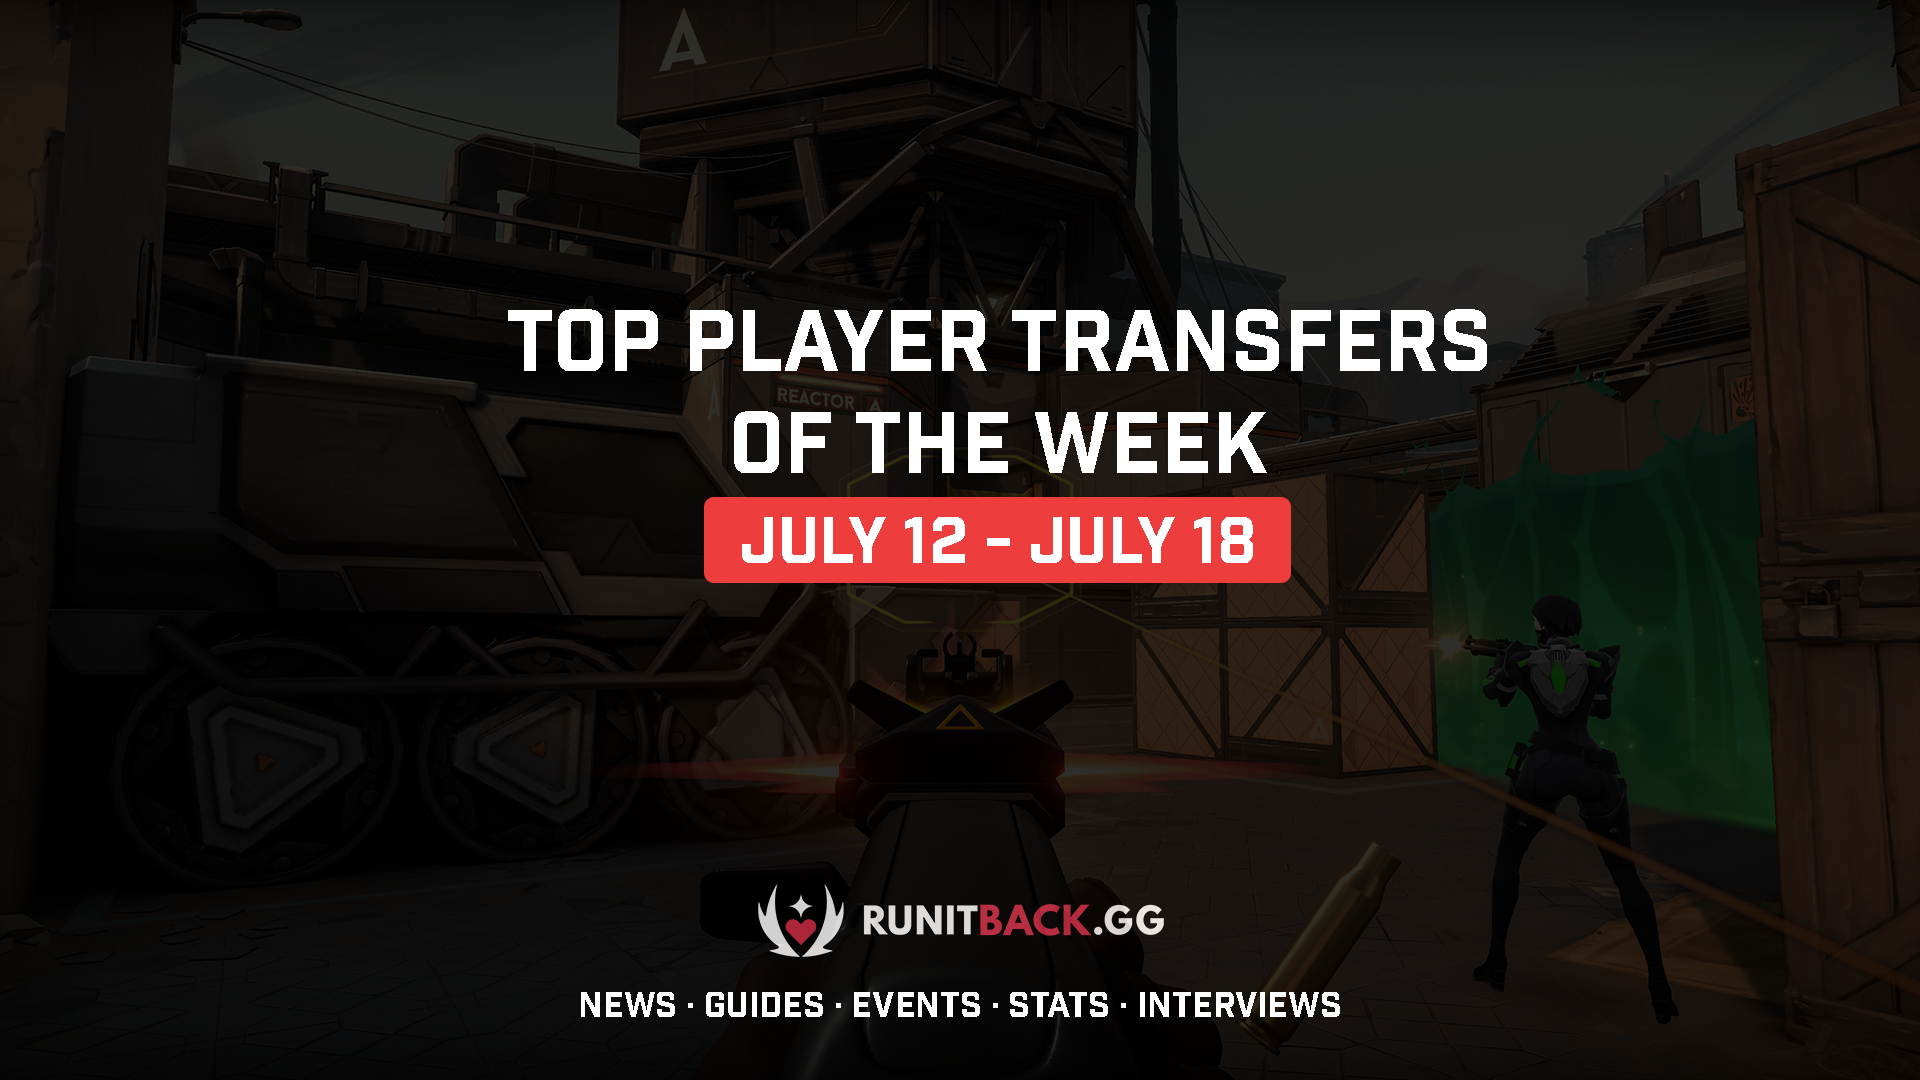 Top Player Transfers of the Week 7/12-7/18